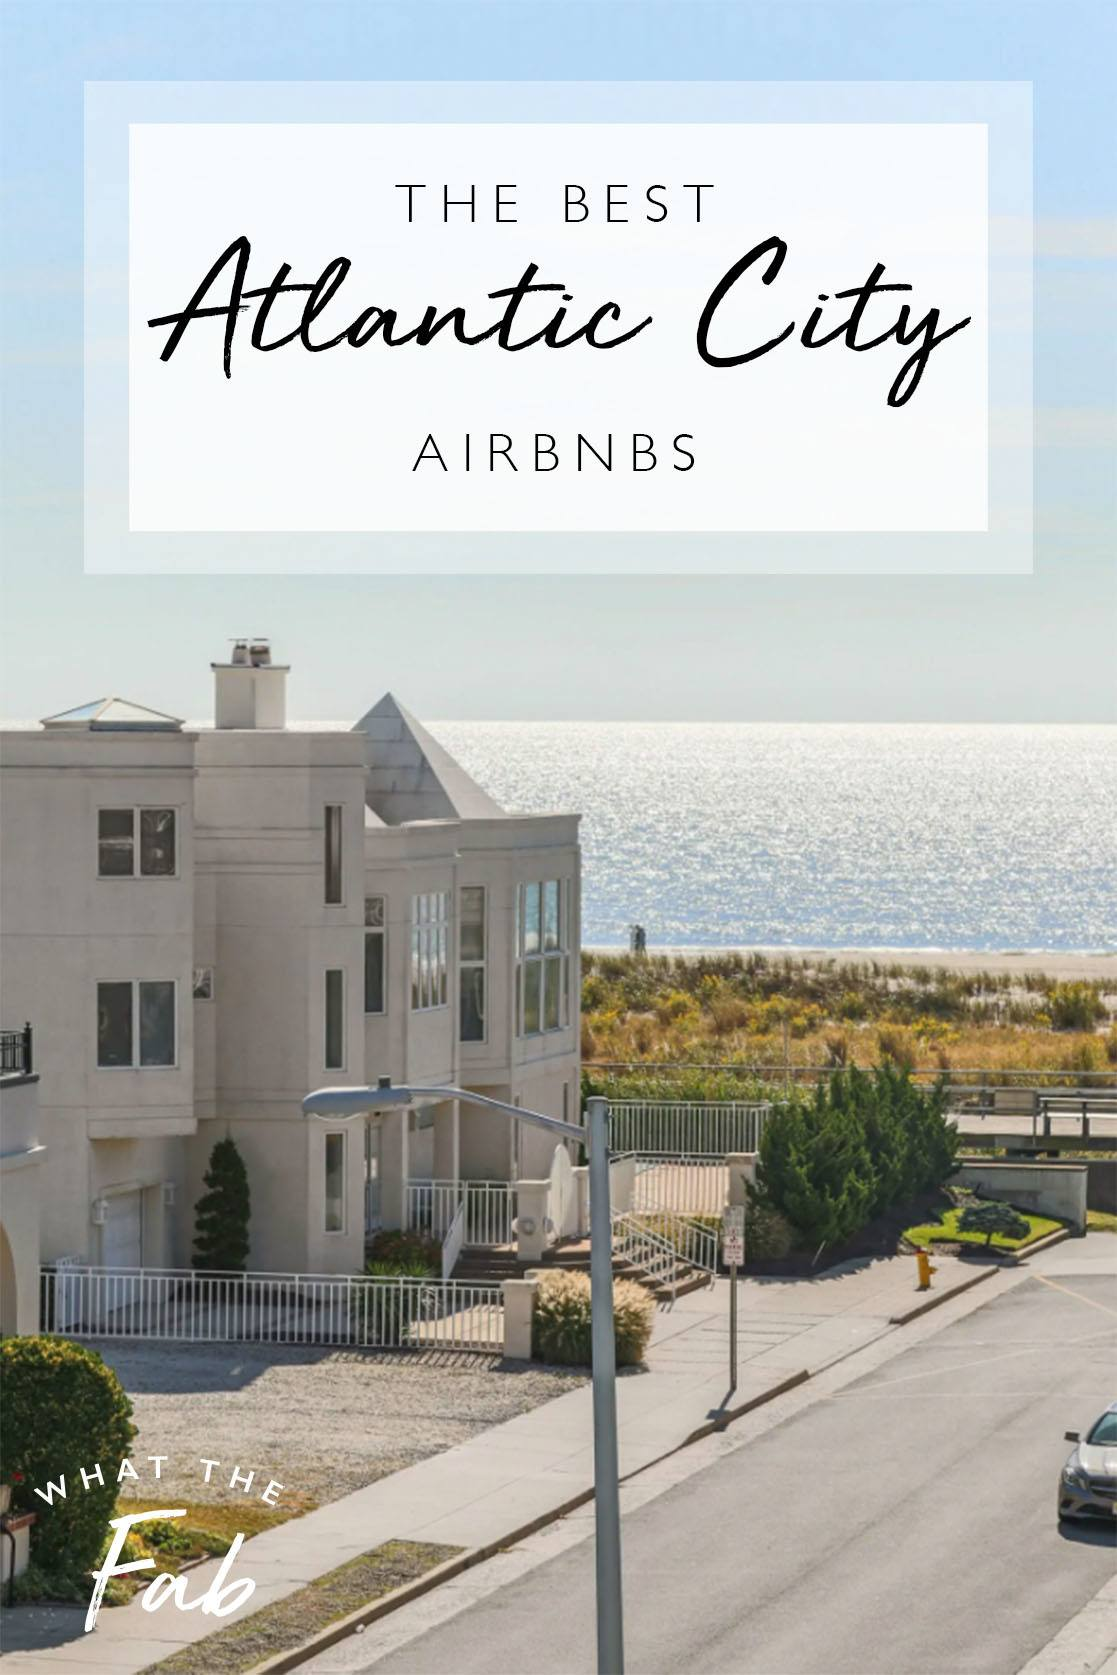 Atlantic City Airbnbs, by Travel Blogger What The Fab